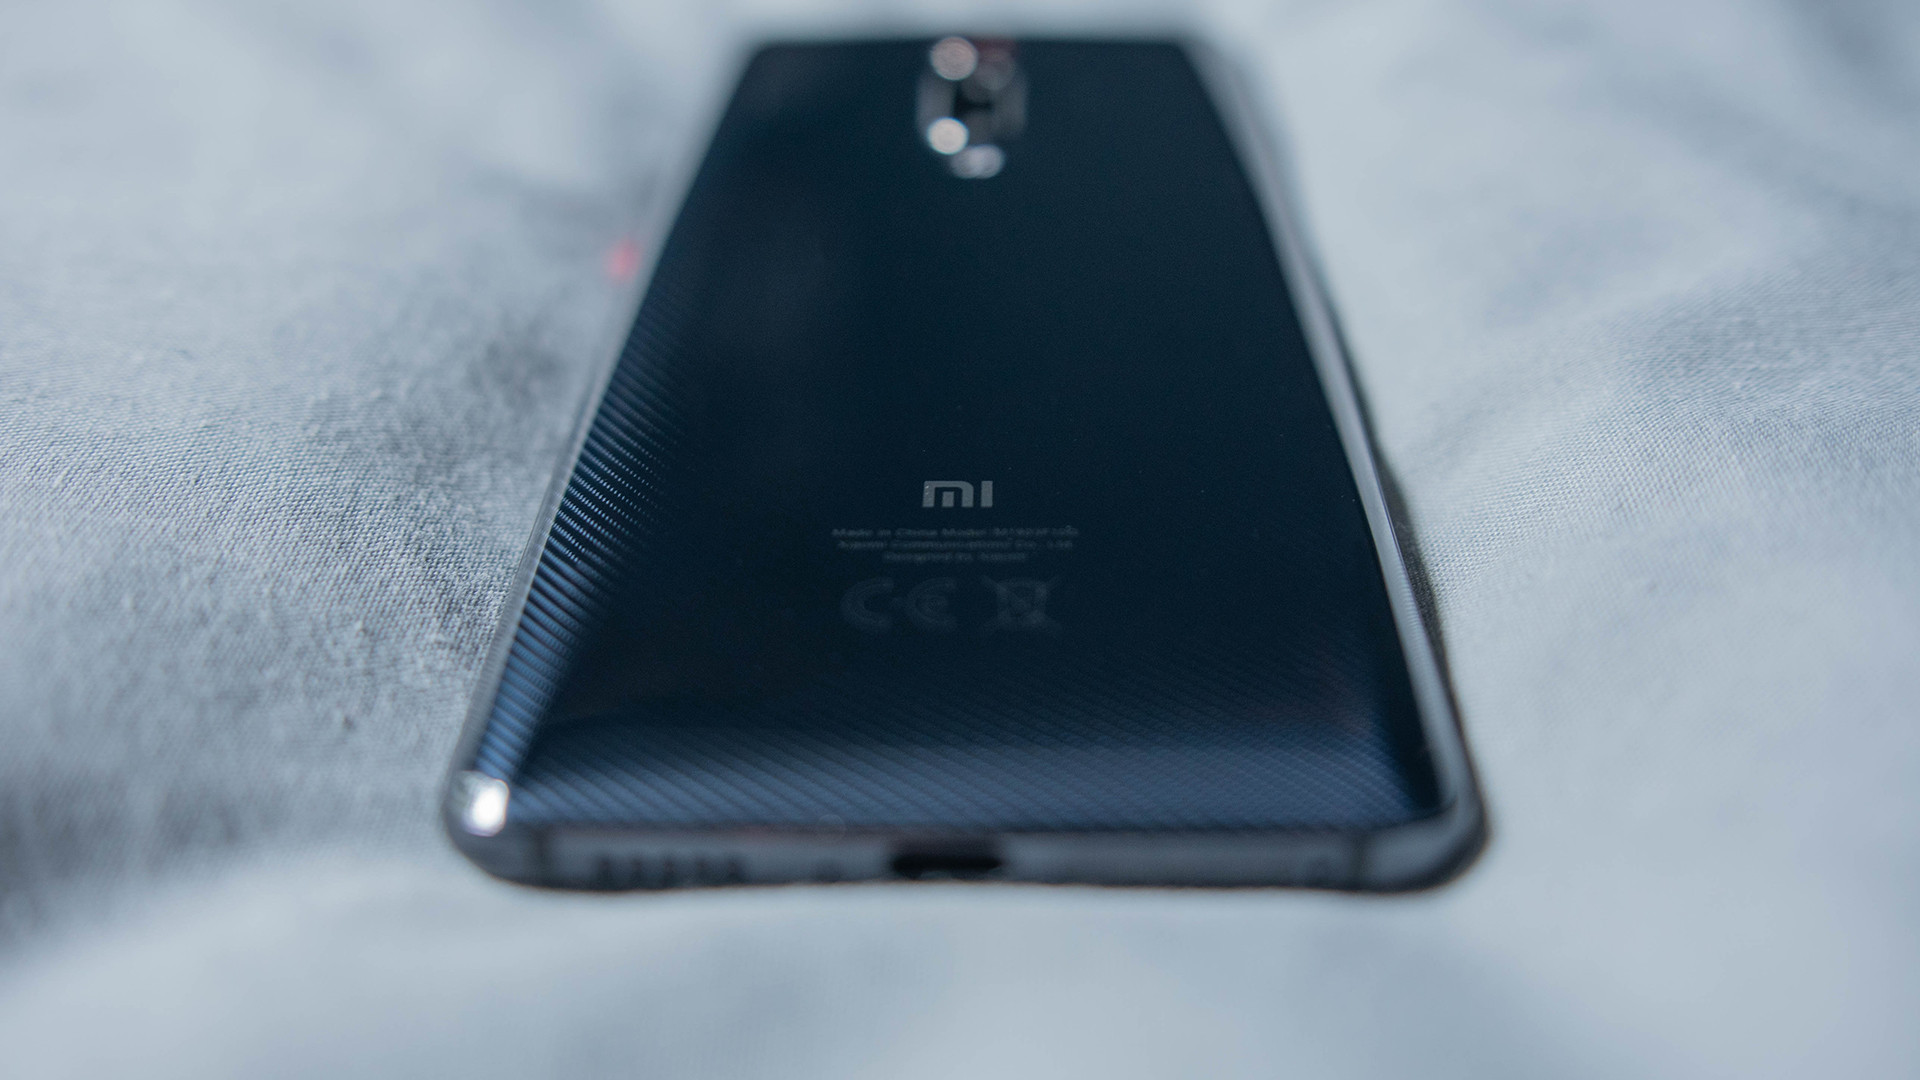 Xiaomi Mi 9T Rear casing depth shot on soft surface